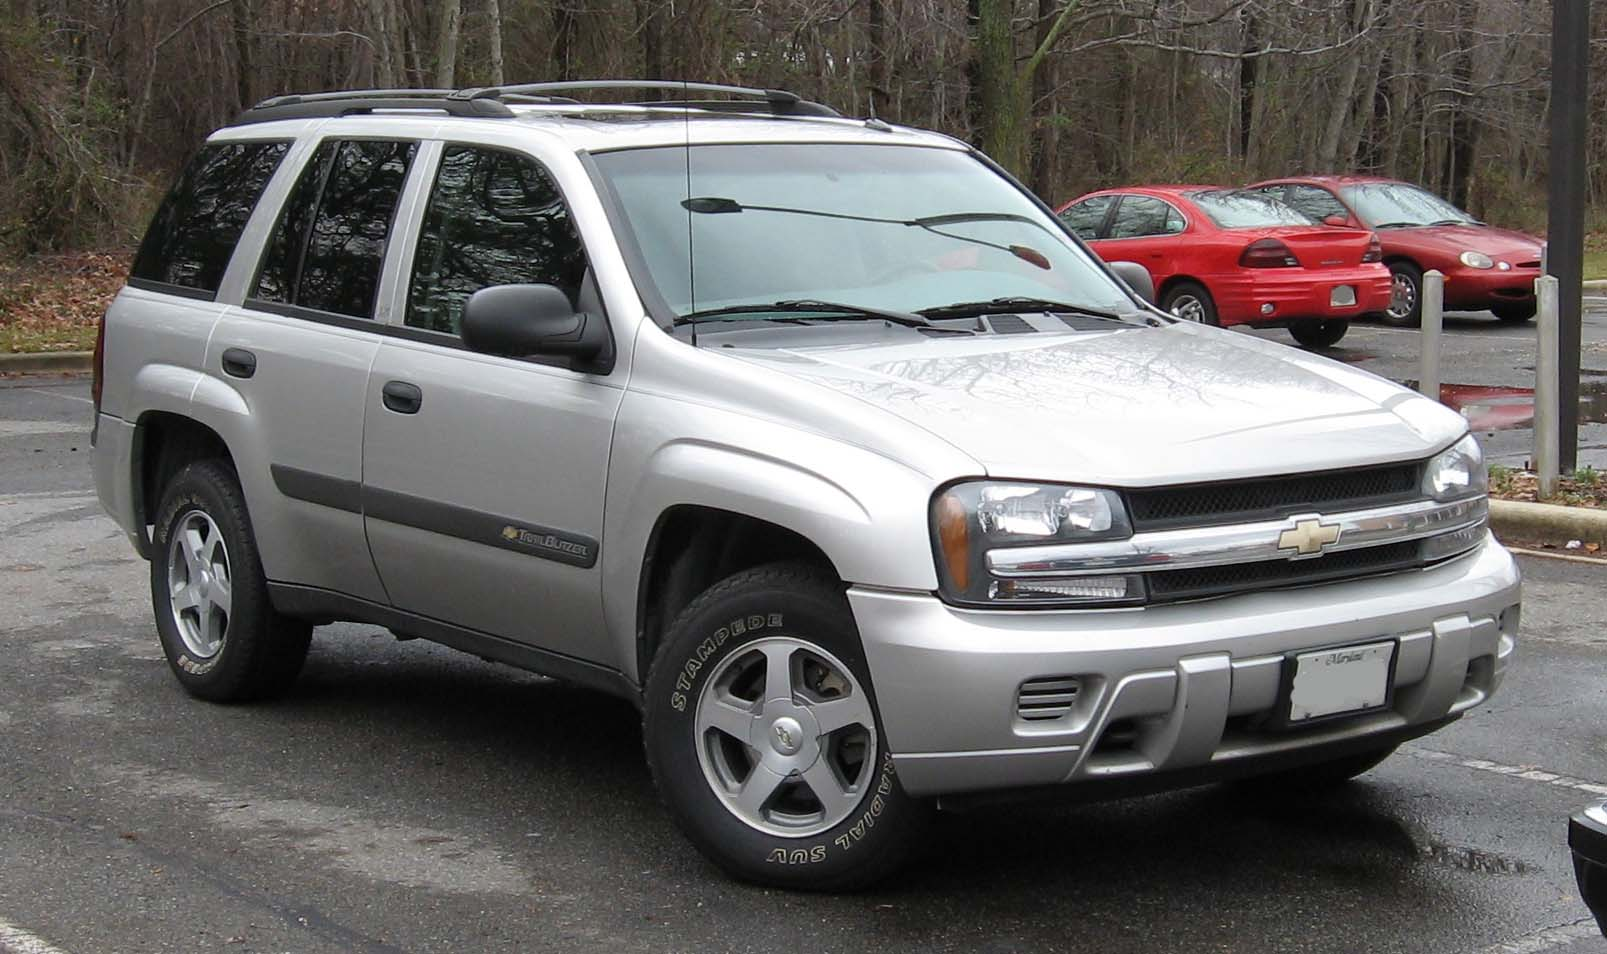 File:Chevrolet-TrailBlazer.JPG